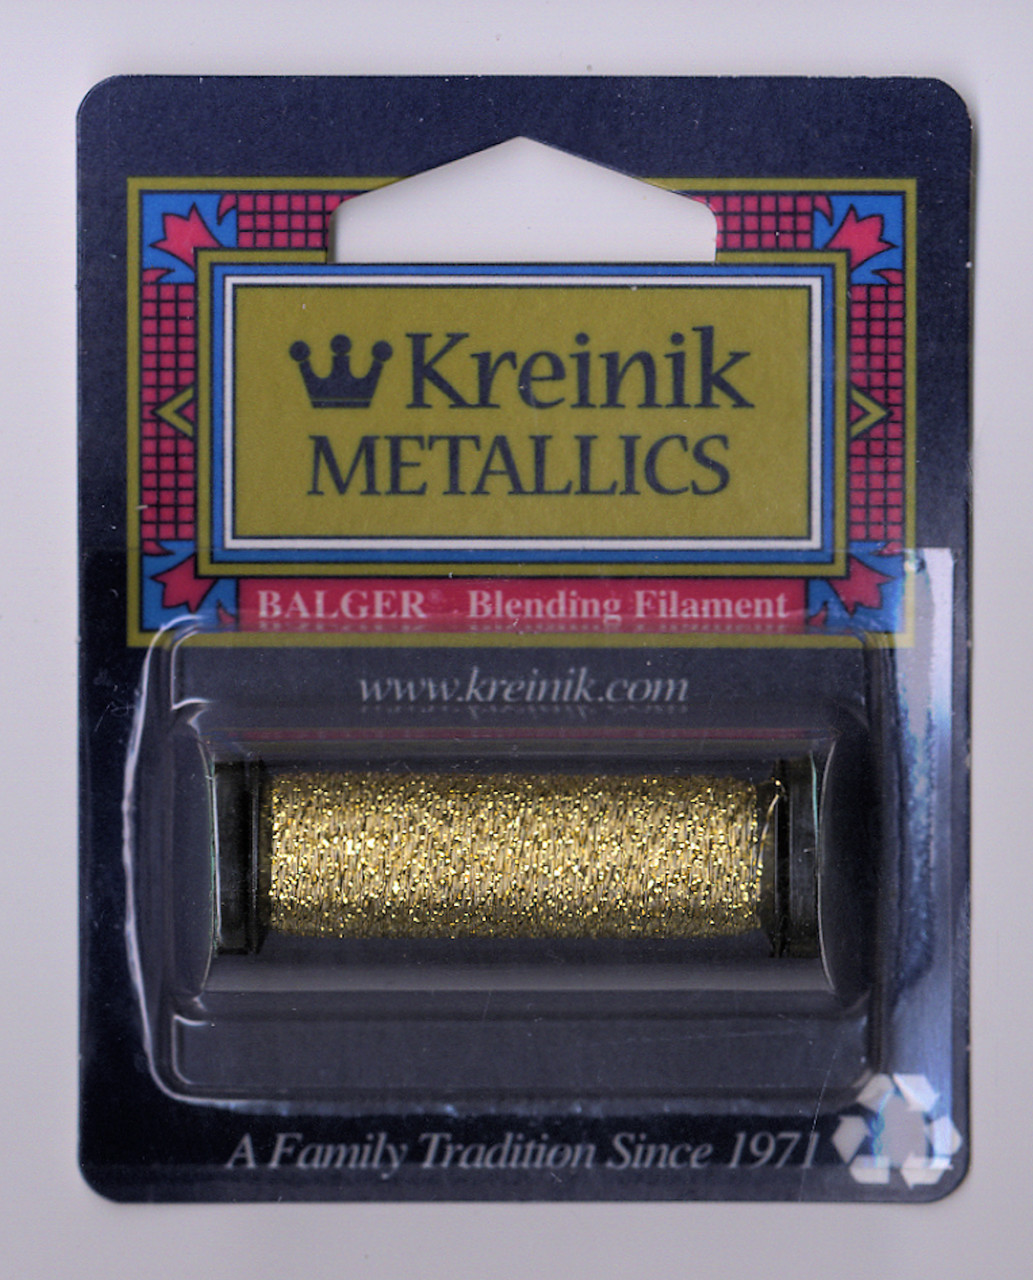 Kreinik Metallics Blending Filament - Gold 002